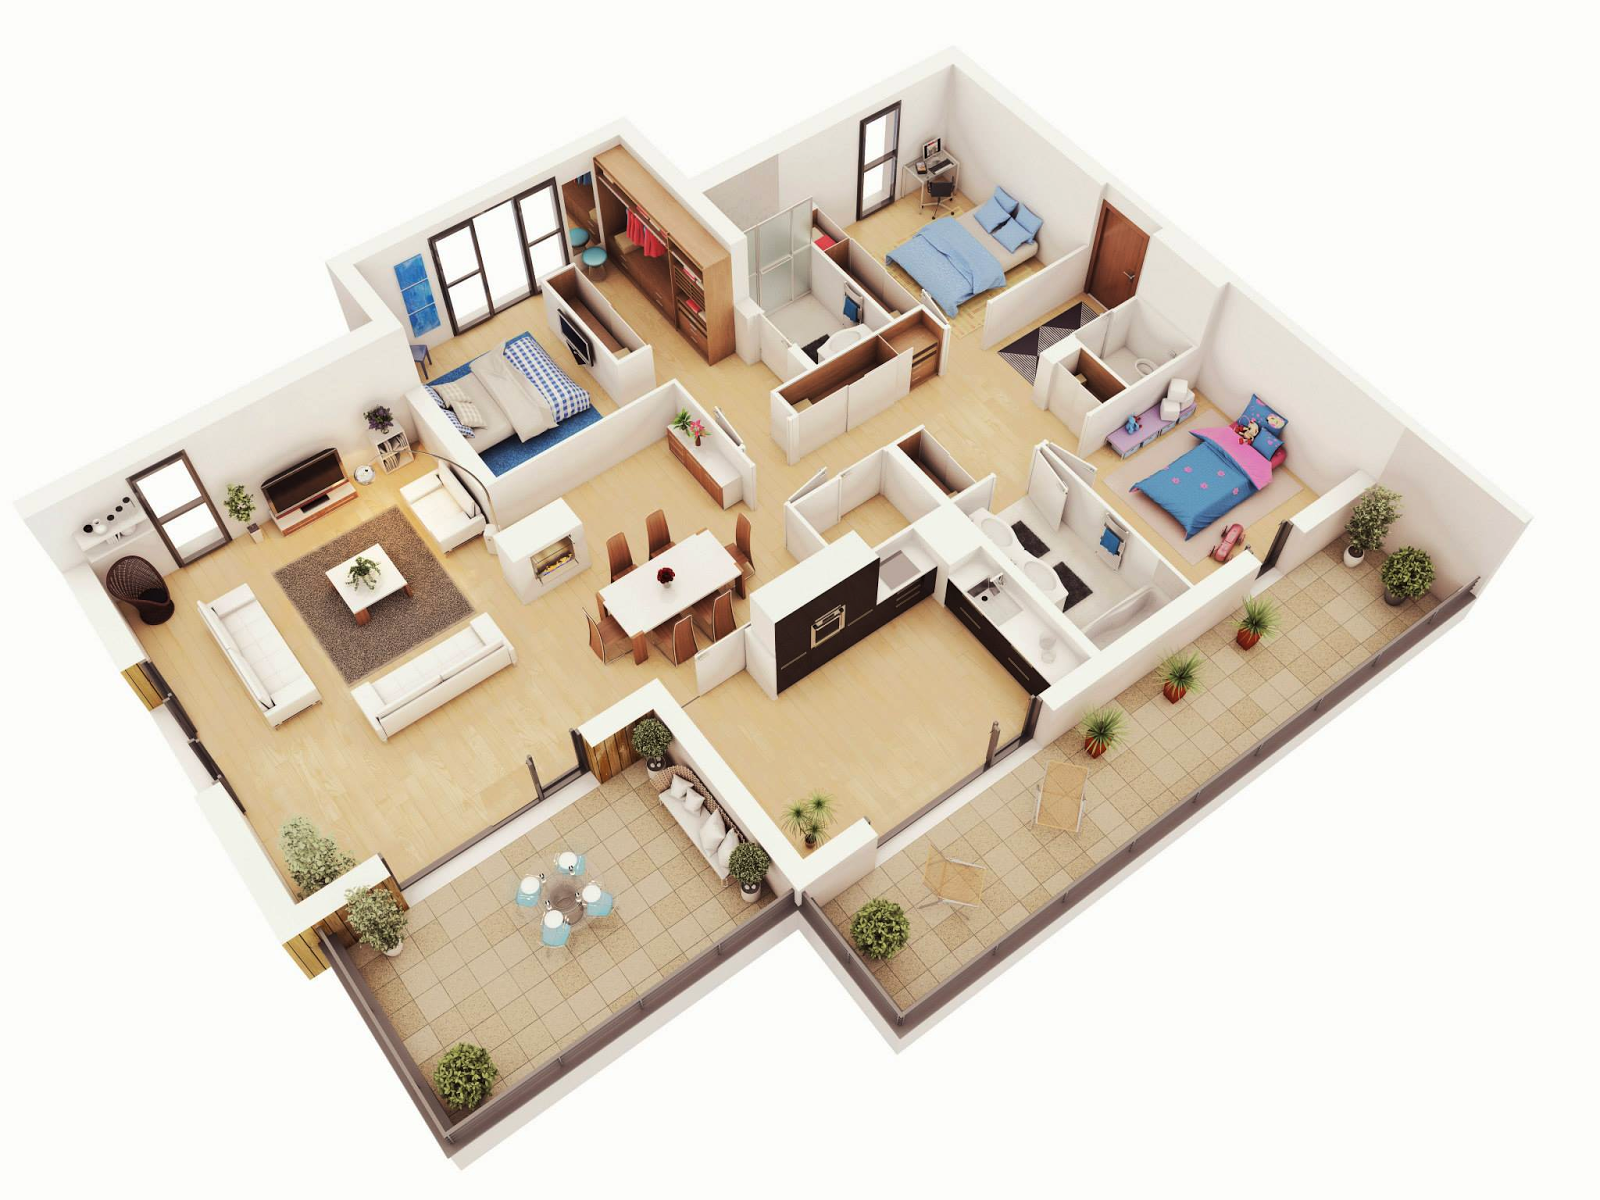 Free 3 bedrooms house design and lay out - House plans bedrooms ...